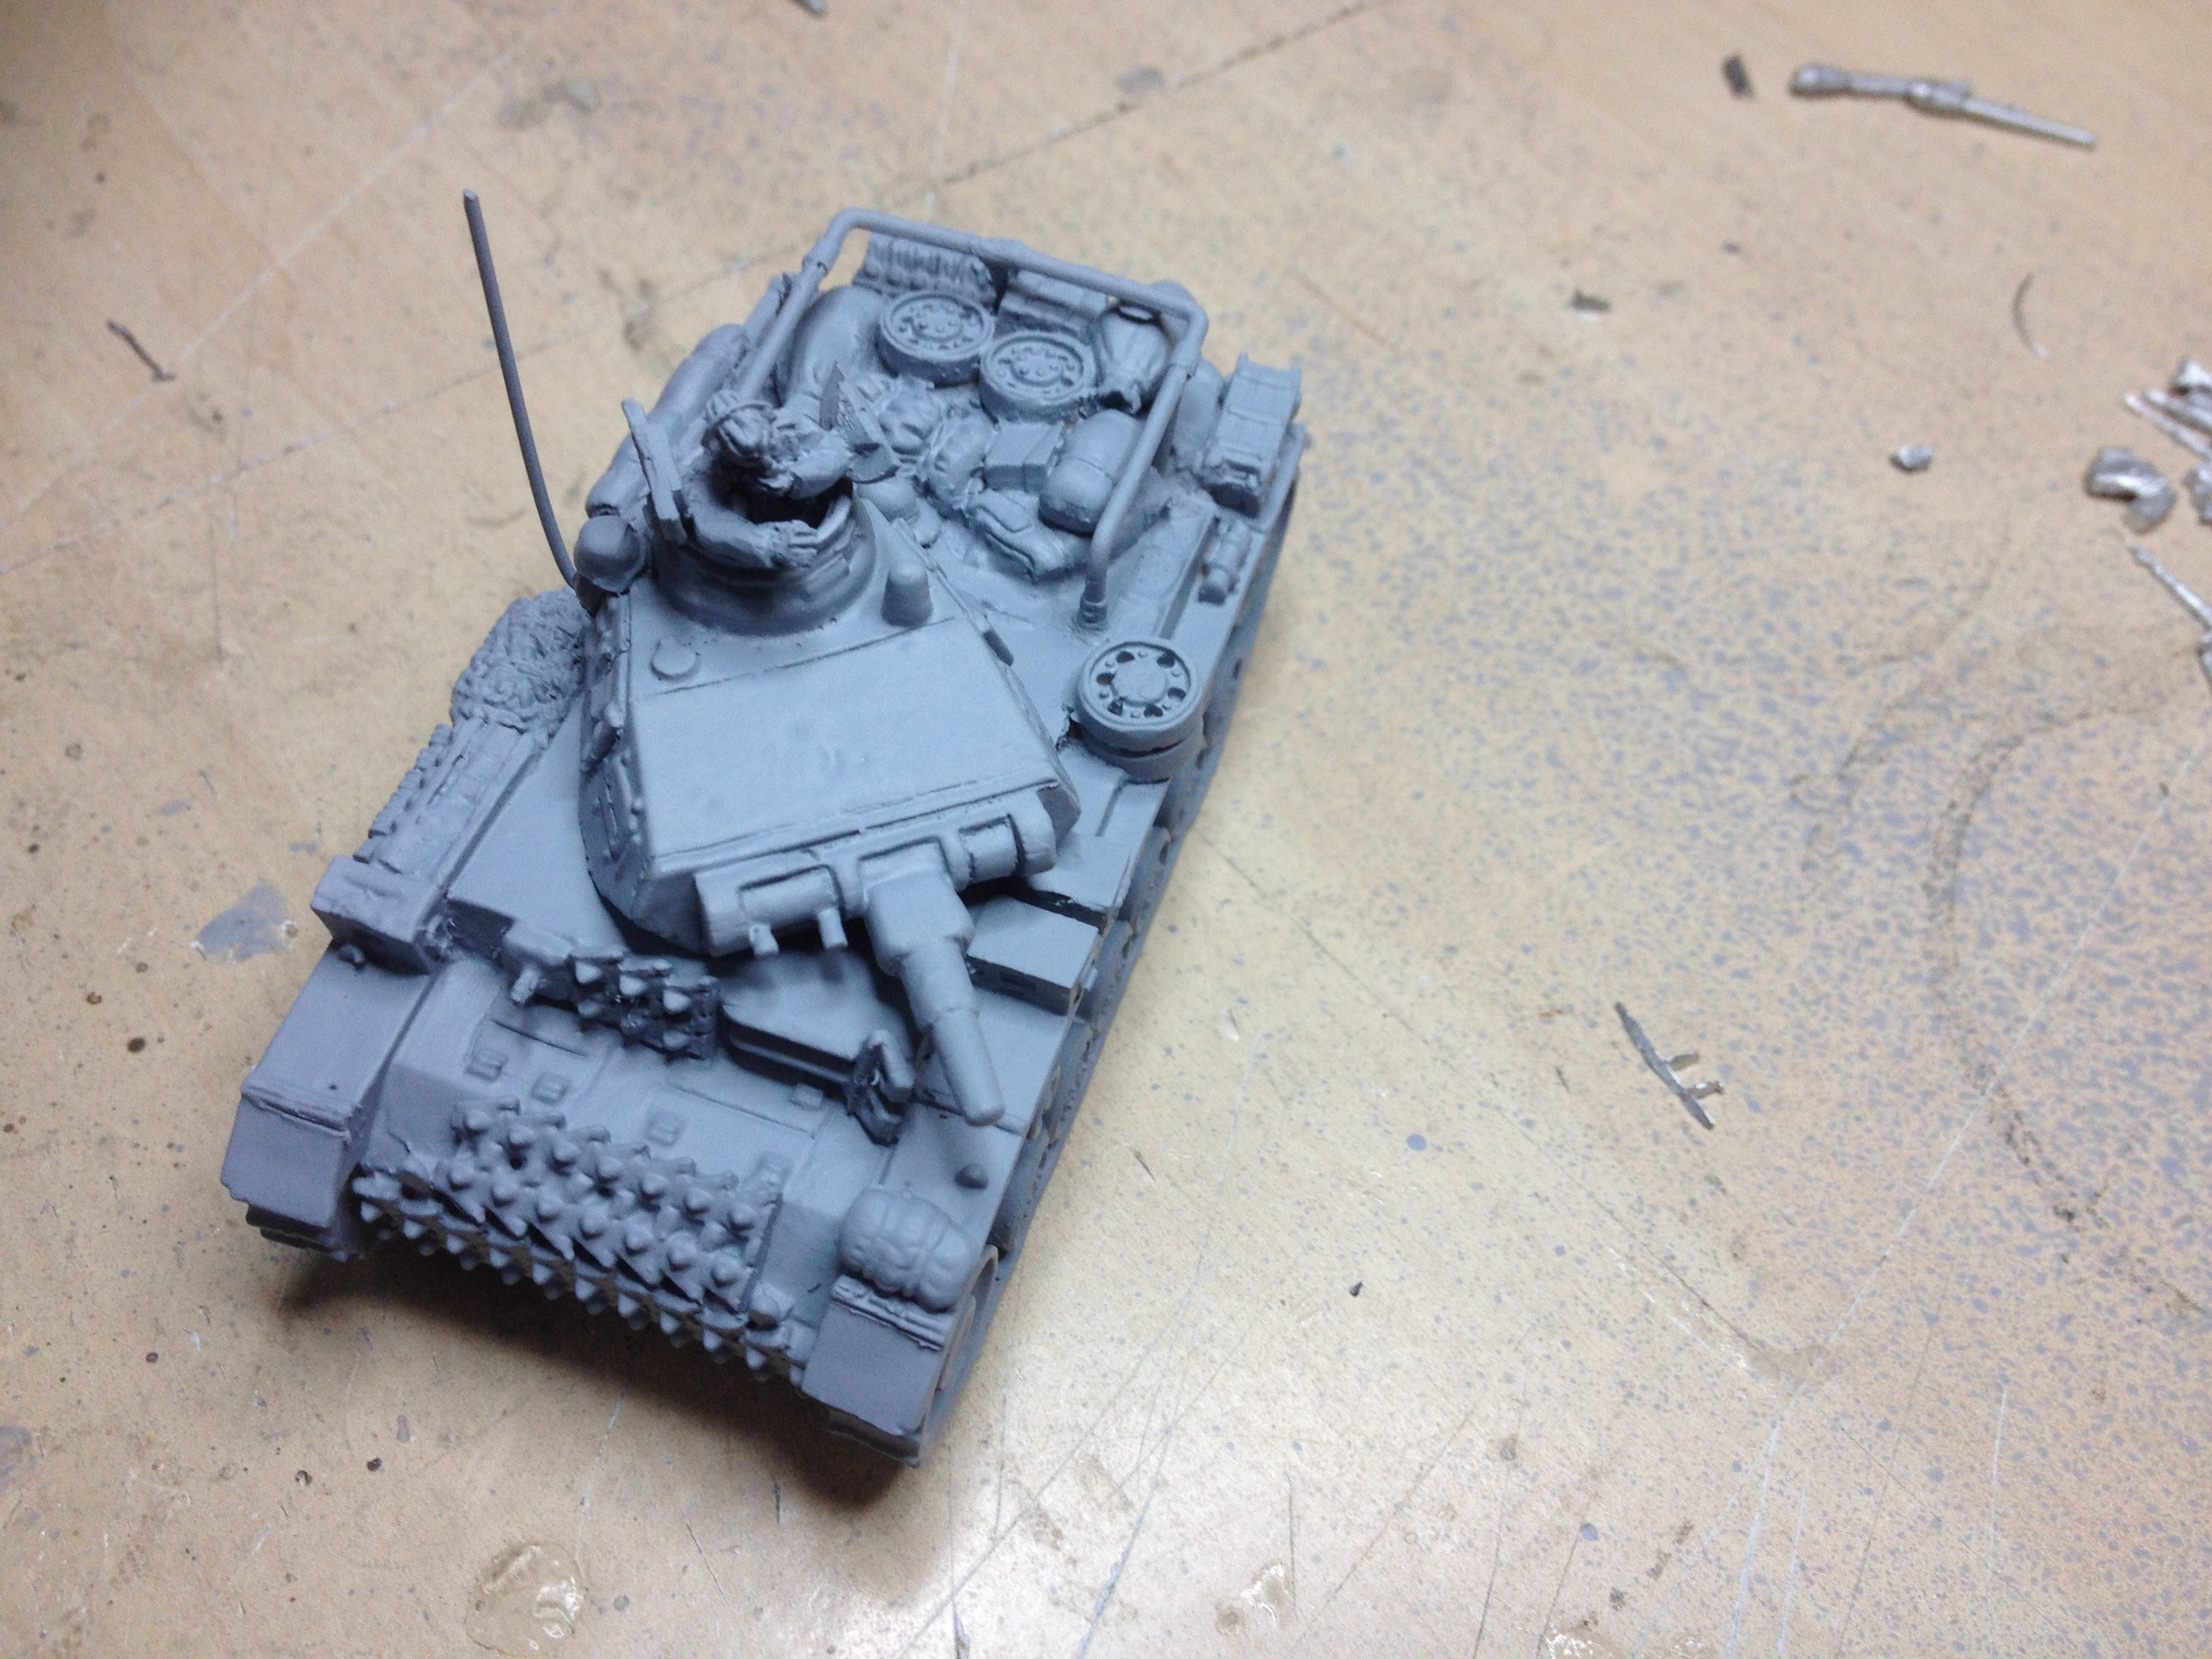 DAK Panzer IIIE Command Tank for early war Panzer Army Africa, Limited  Edition kit, built & Ready